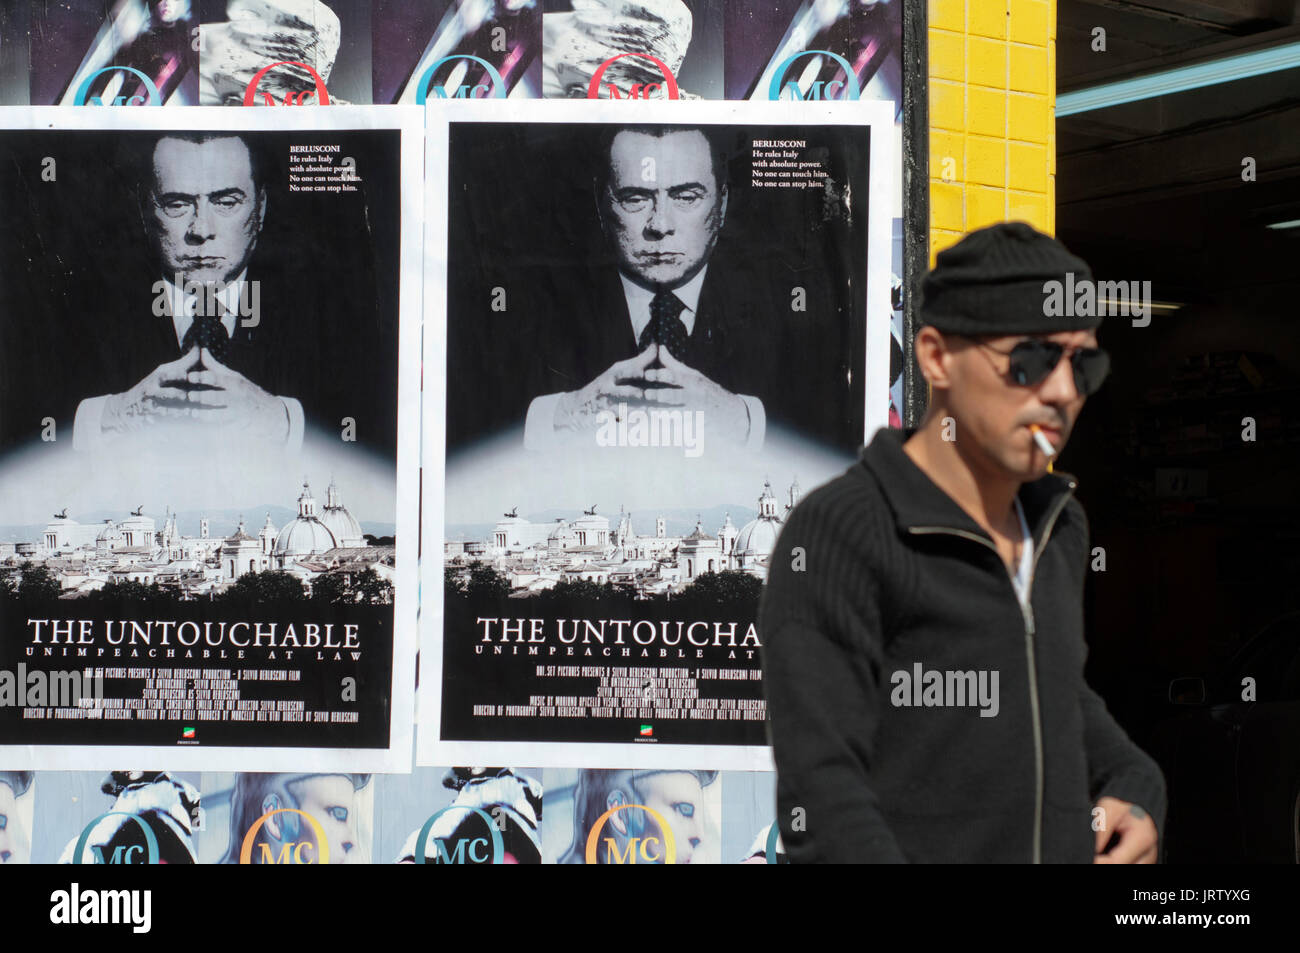 Poster against Berlusconi in Little Italy, Manhattan, New York, USA. - Stock Image